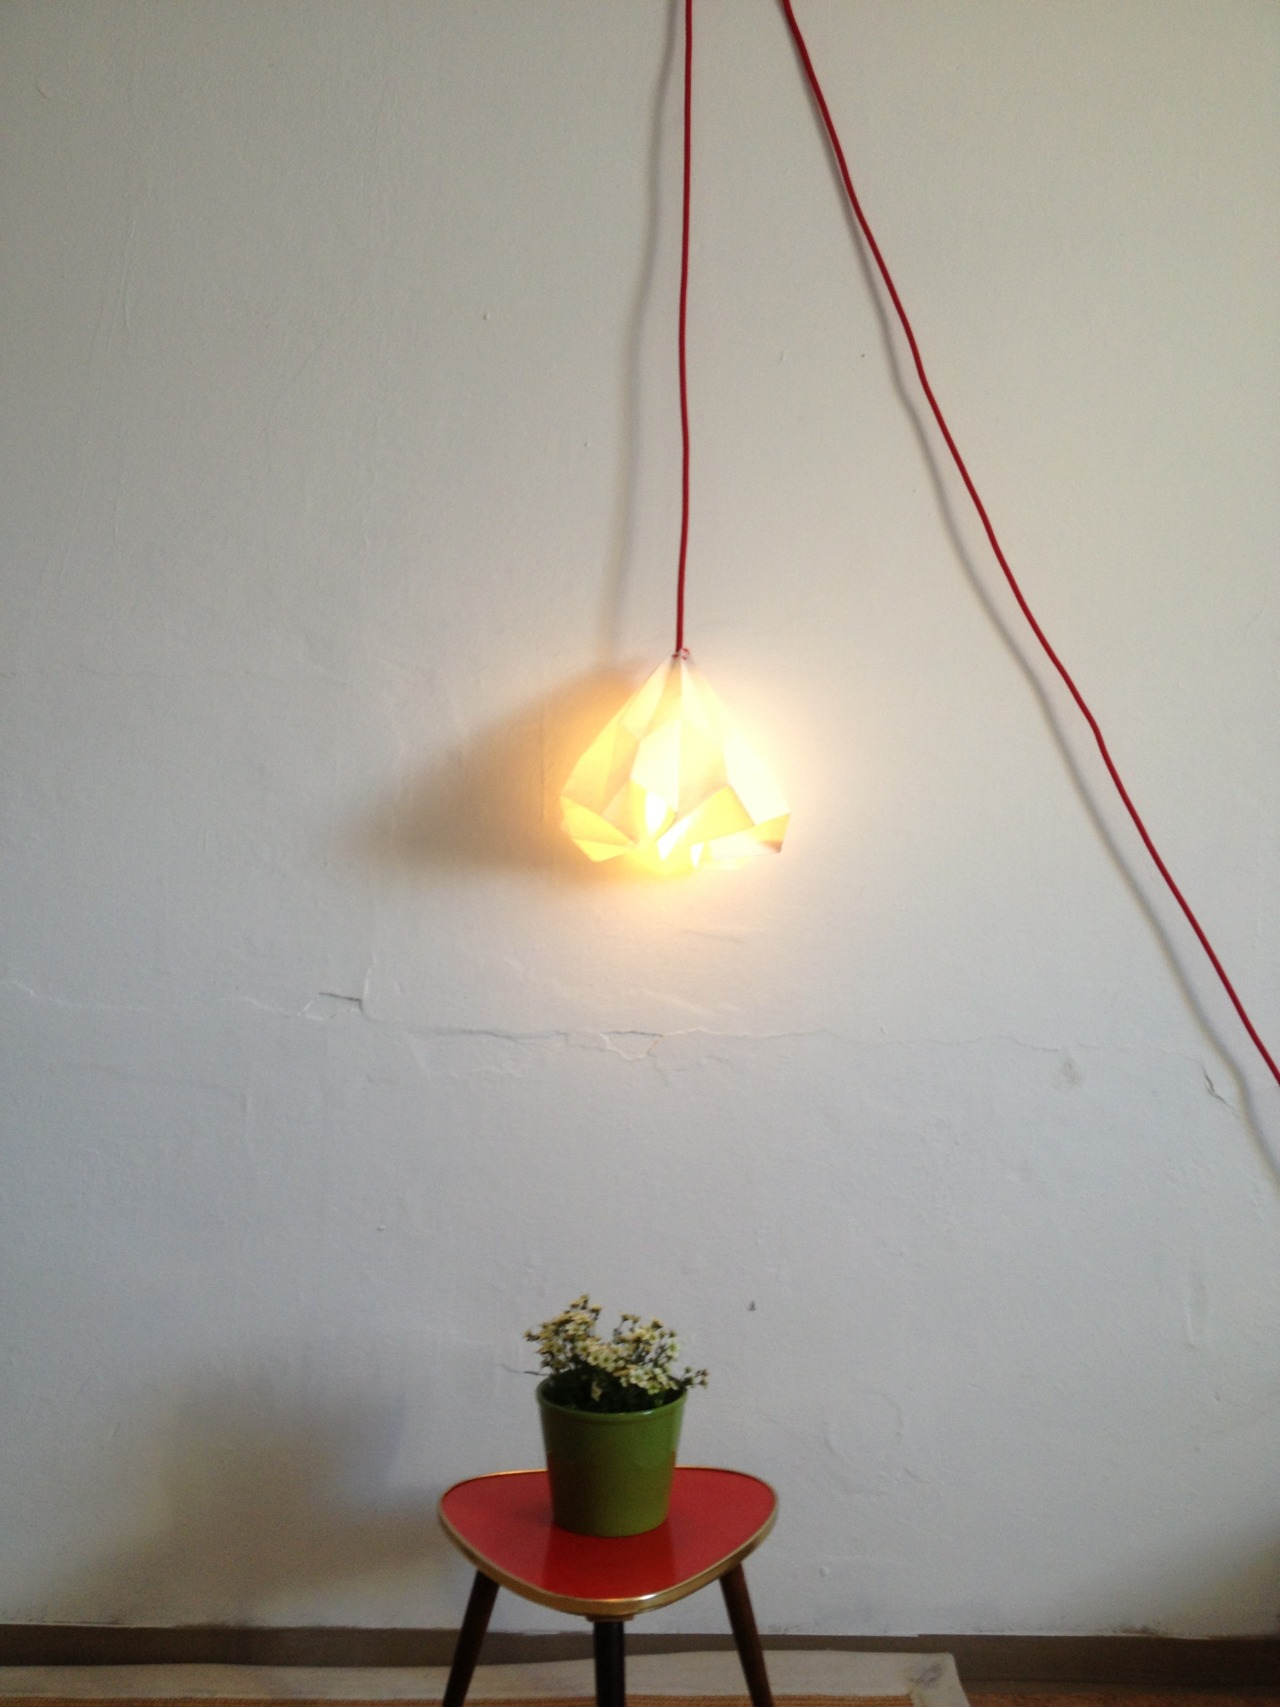 Elsie - My folded paper lamp. (2012)